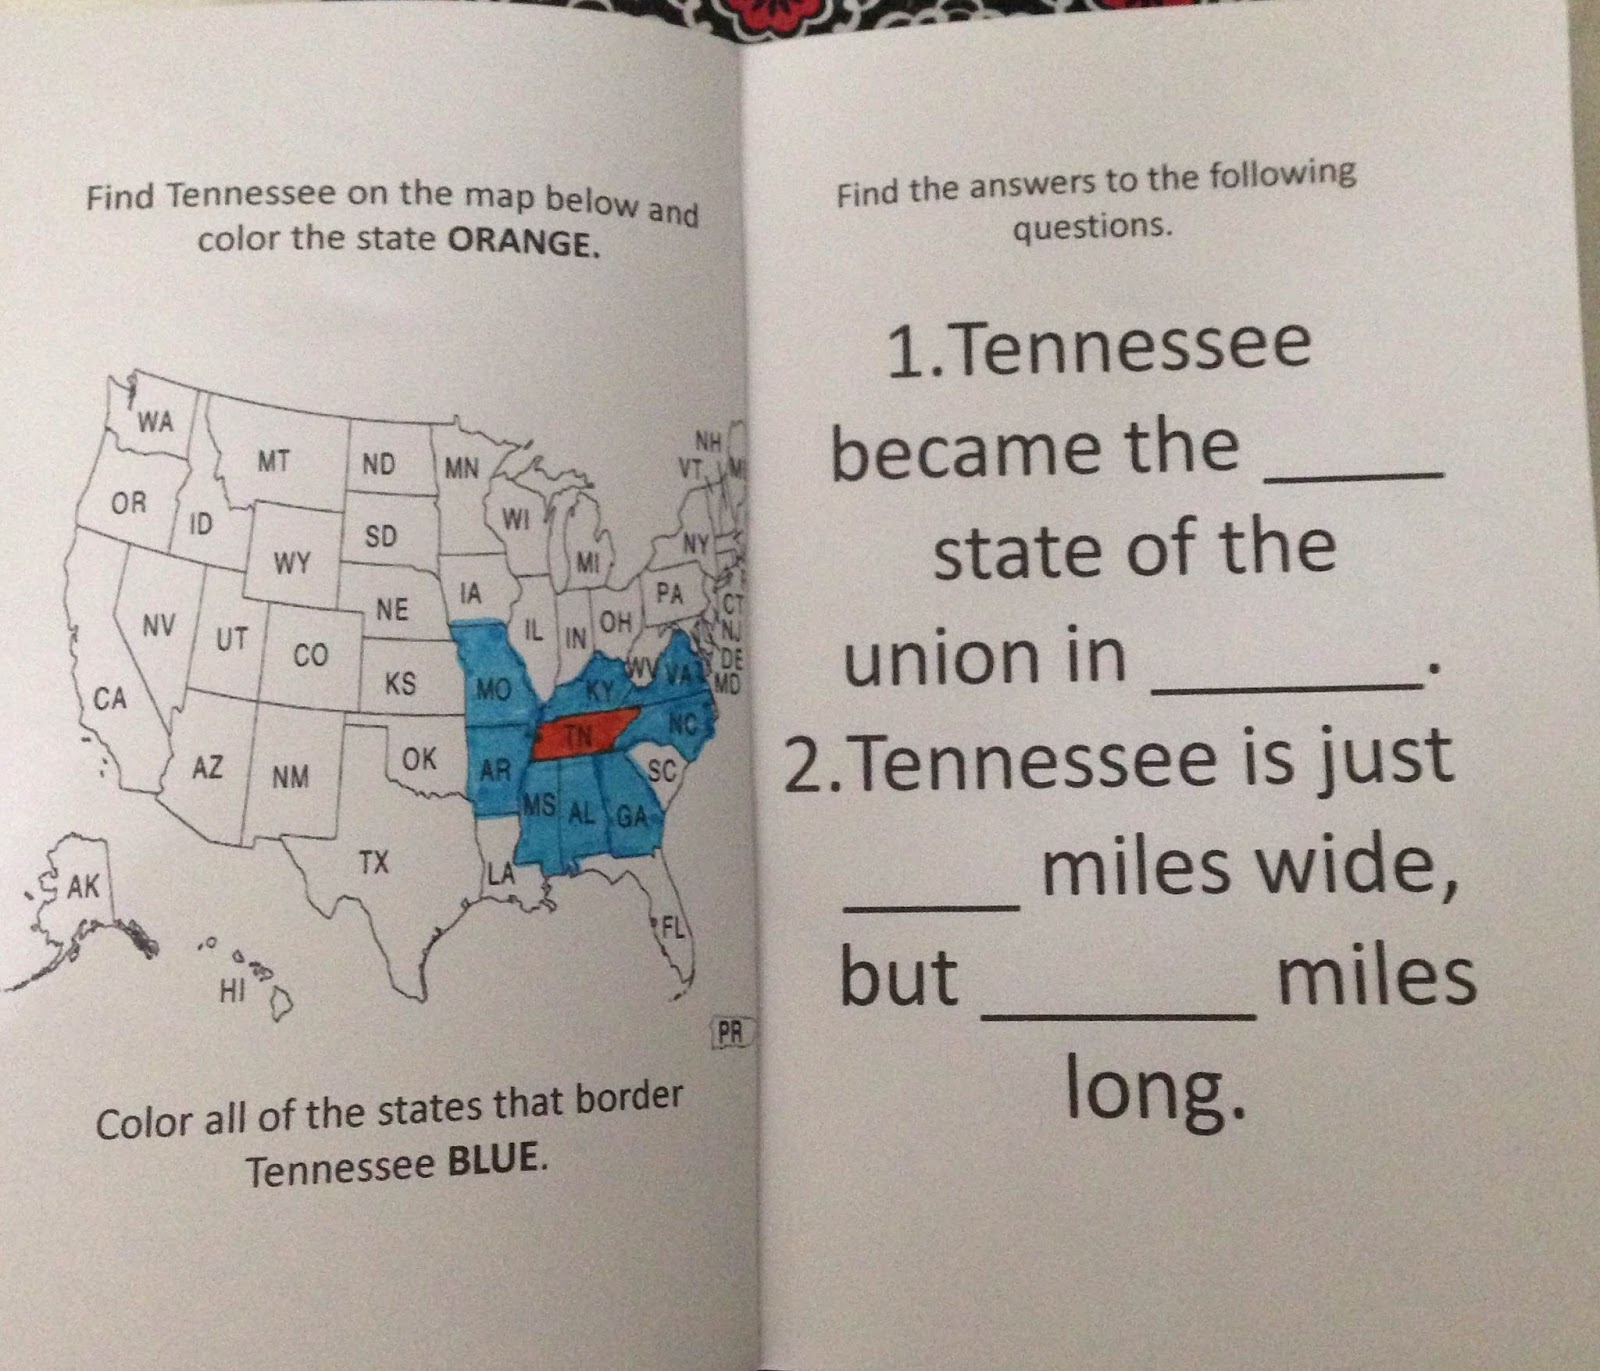 in addition on page two i have some questions they must find on the internet such as in what order tennessee joined the united states and the date